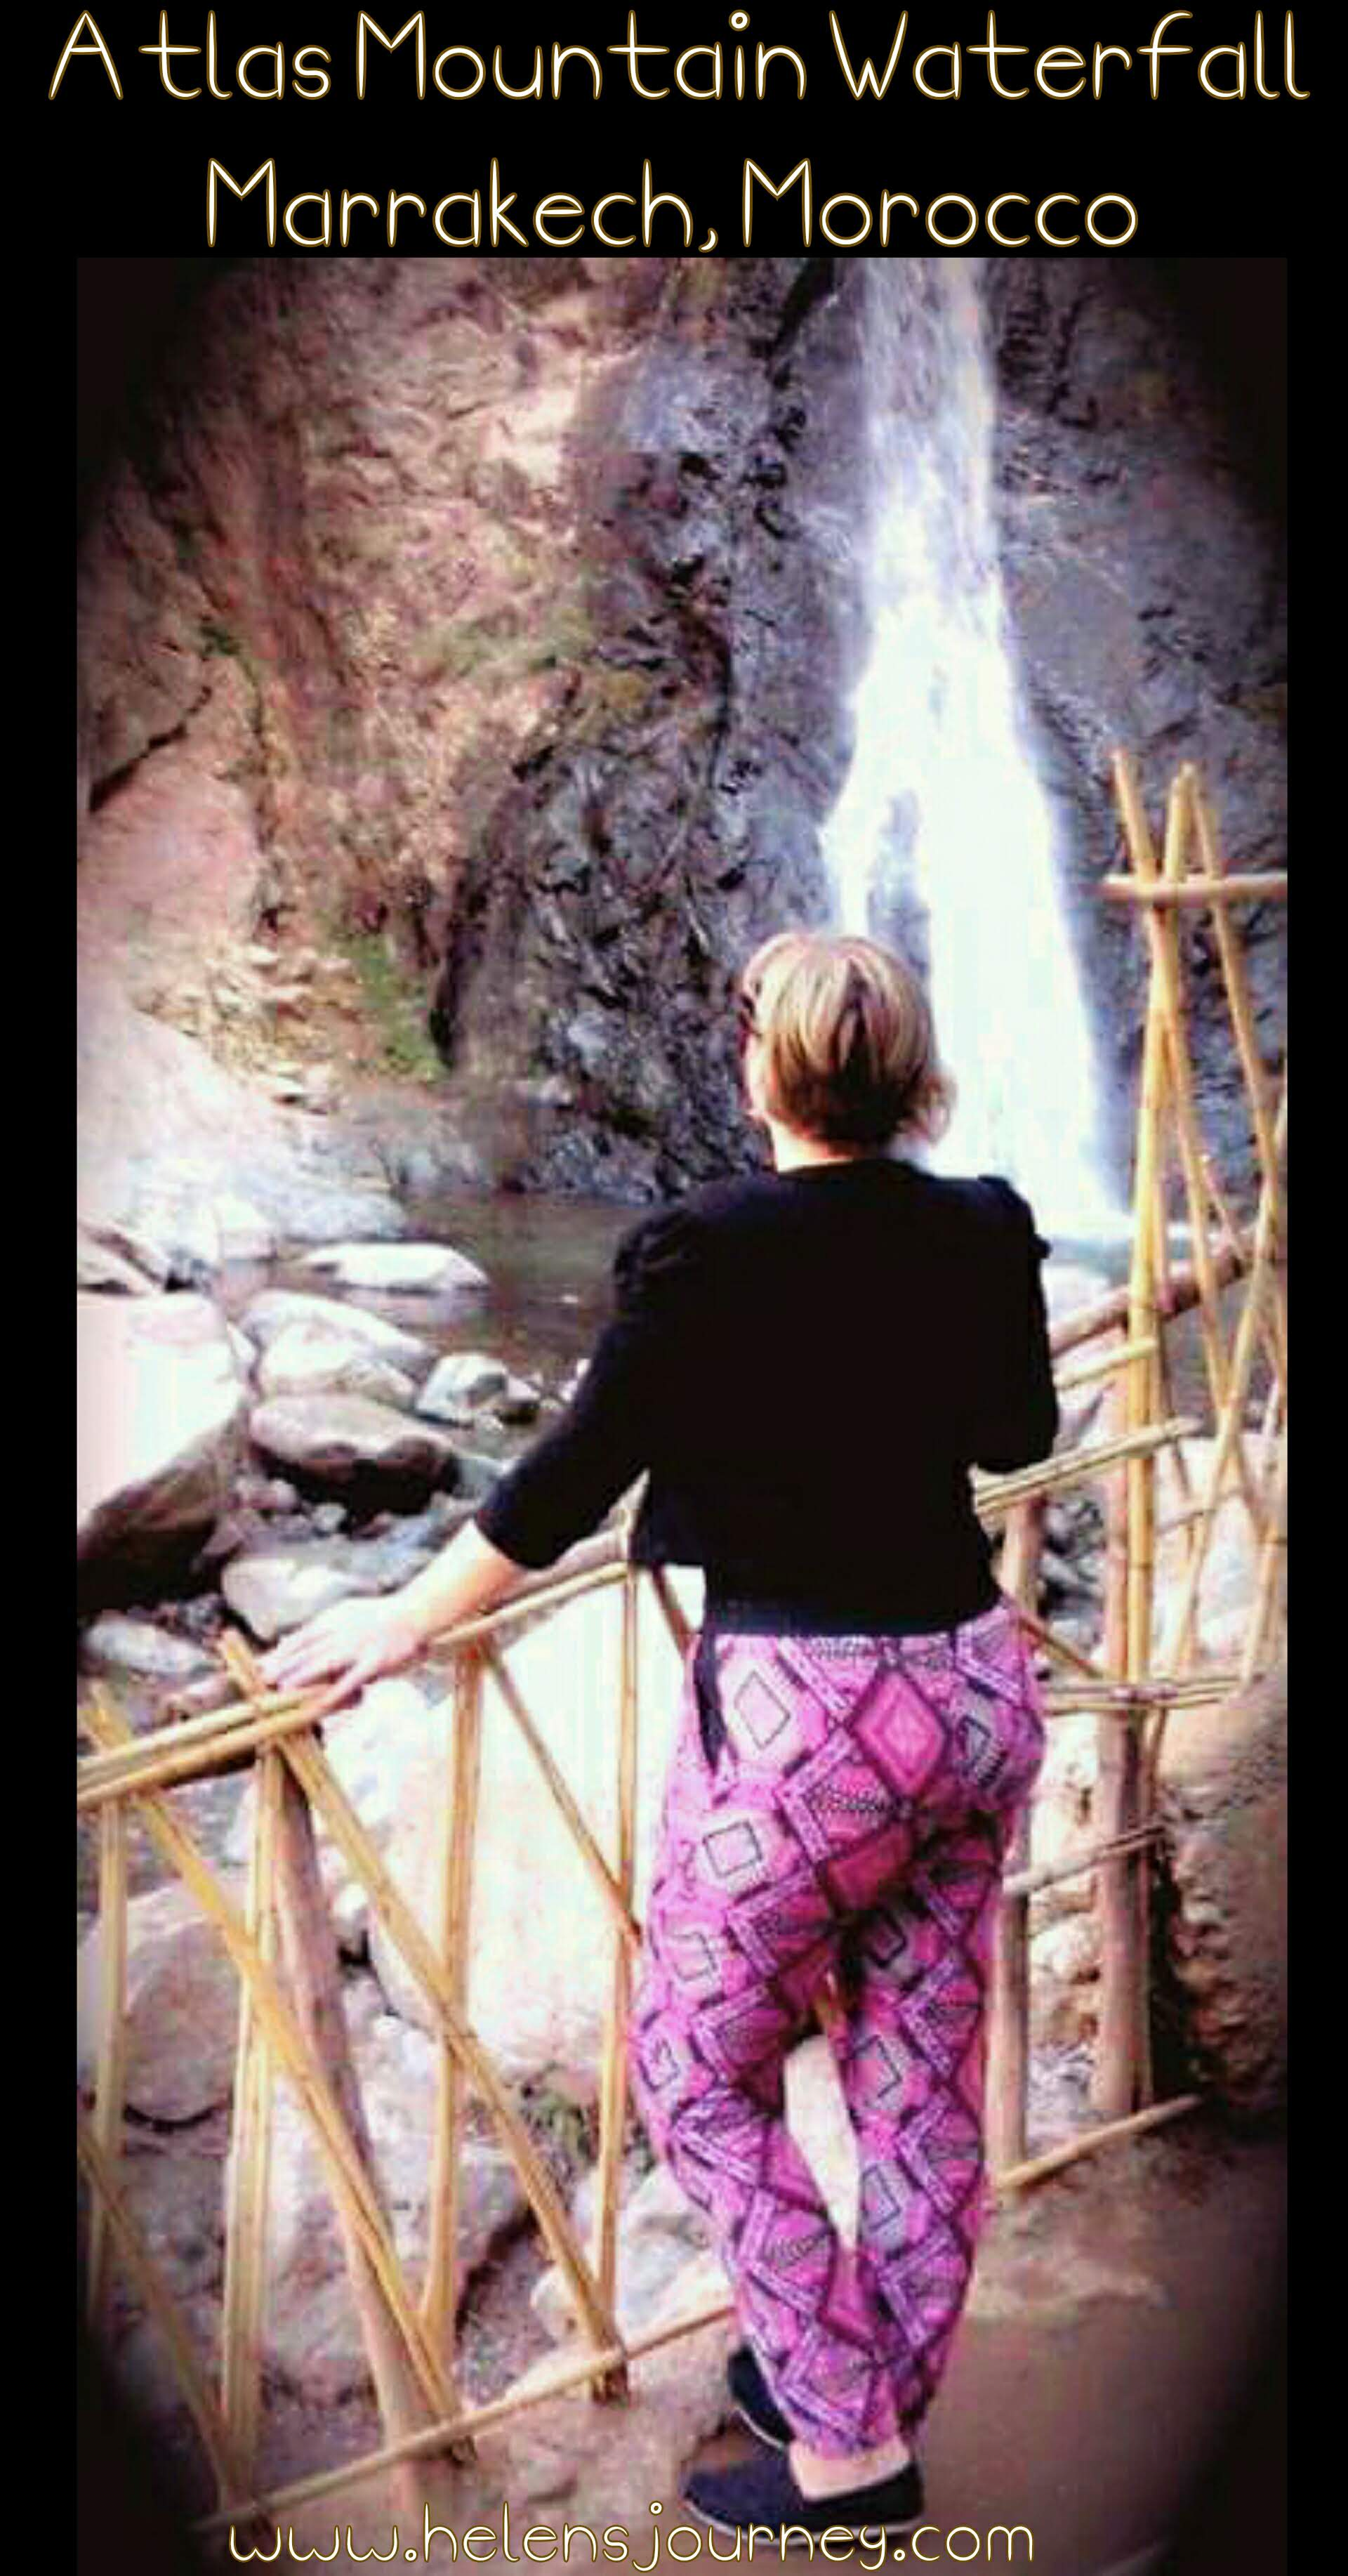 Helen's Journey Blog in atlas mountain waterfall marrakech morocco